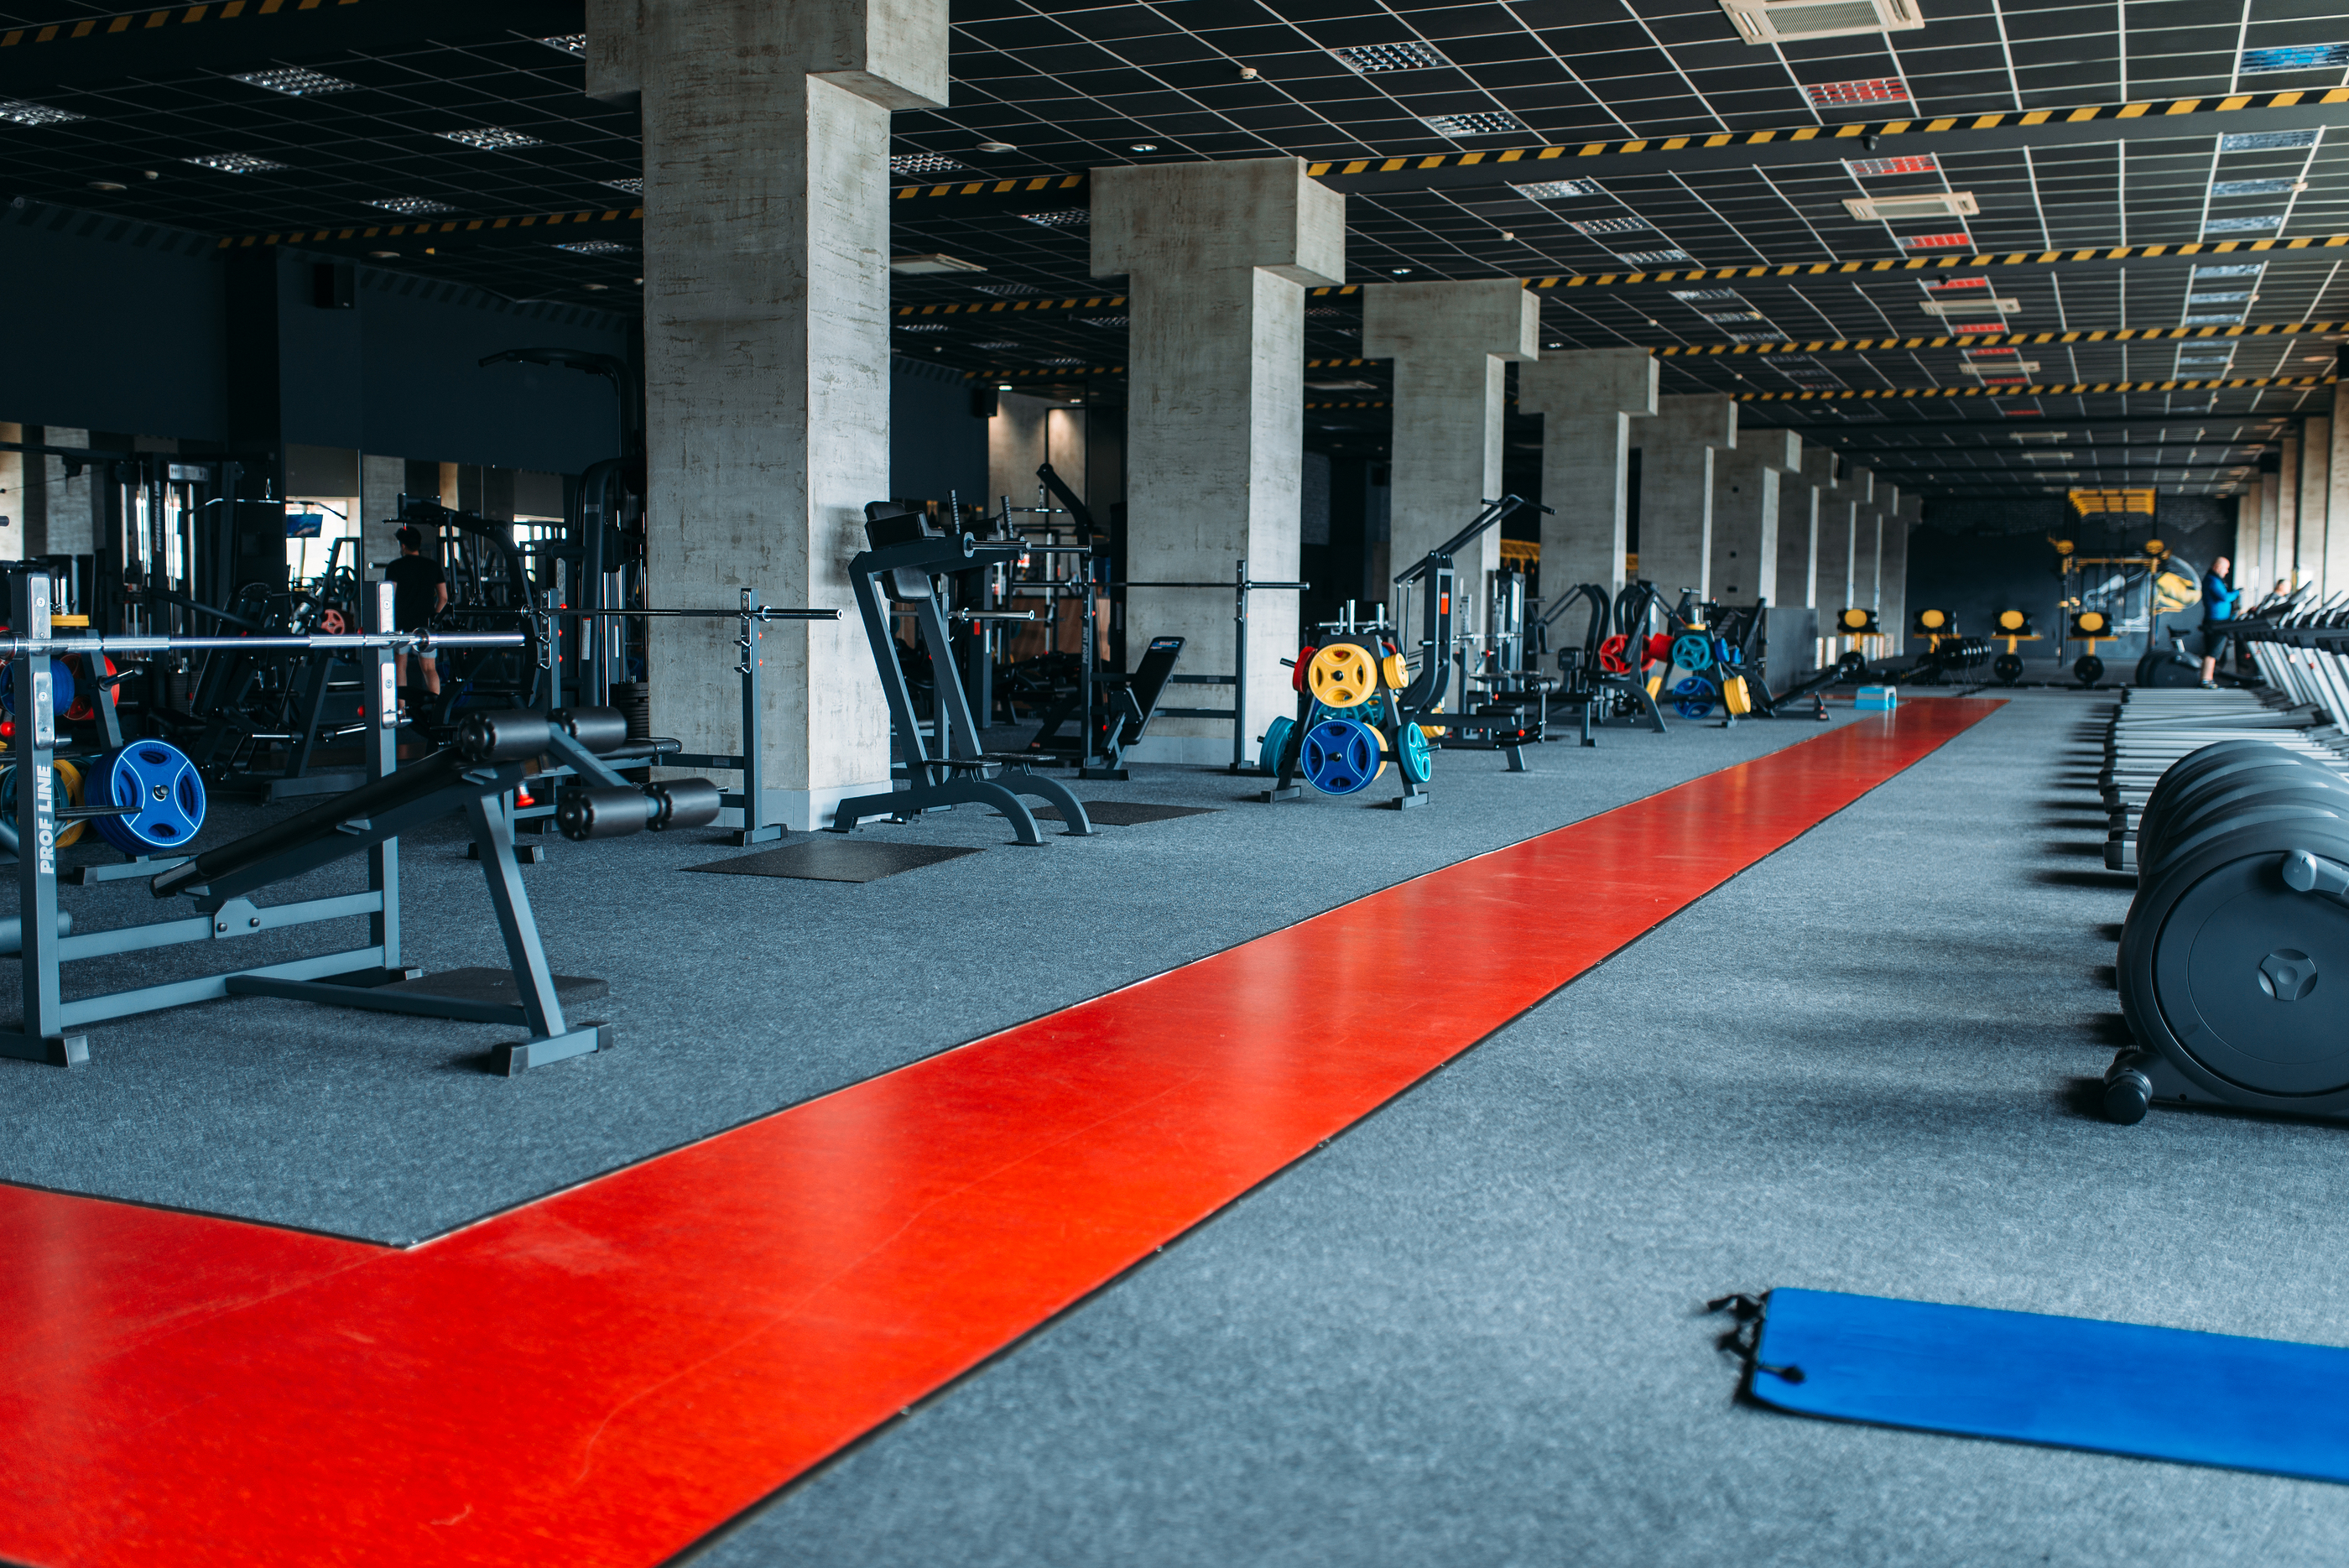 Commercial cleaning services for fitness centers